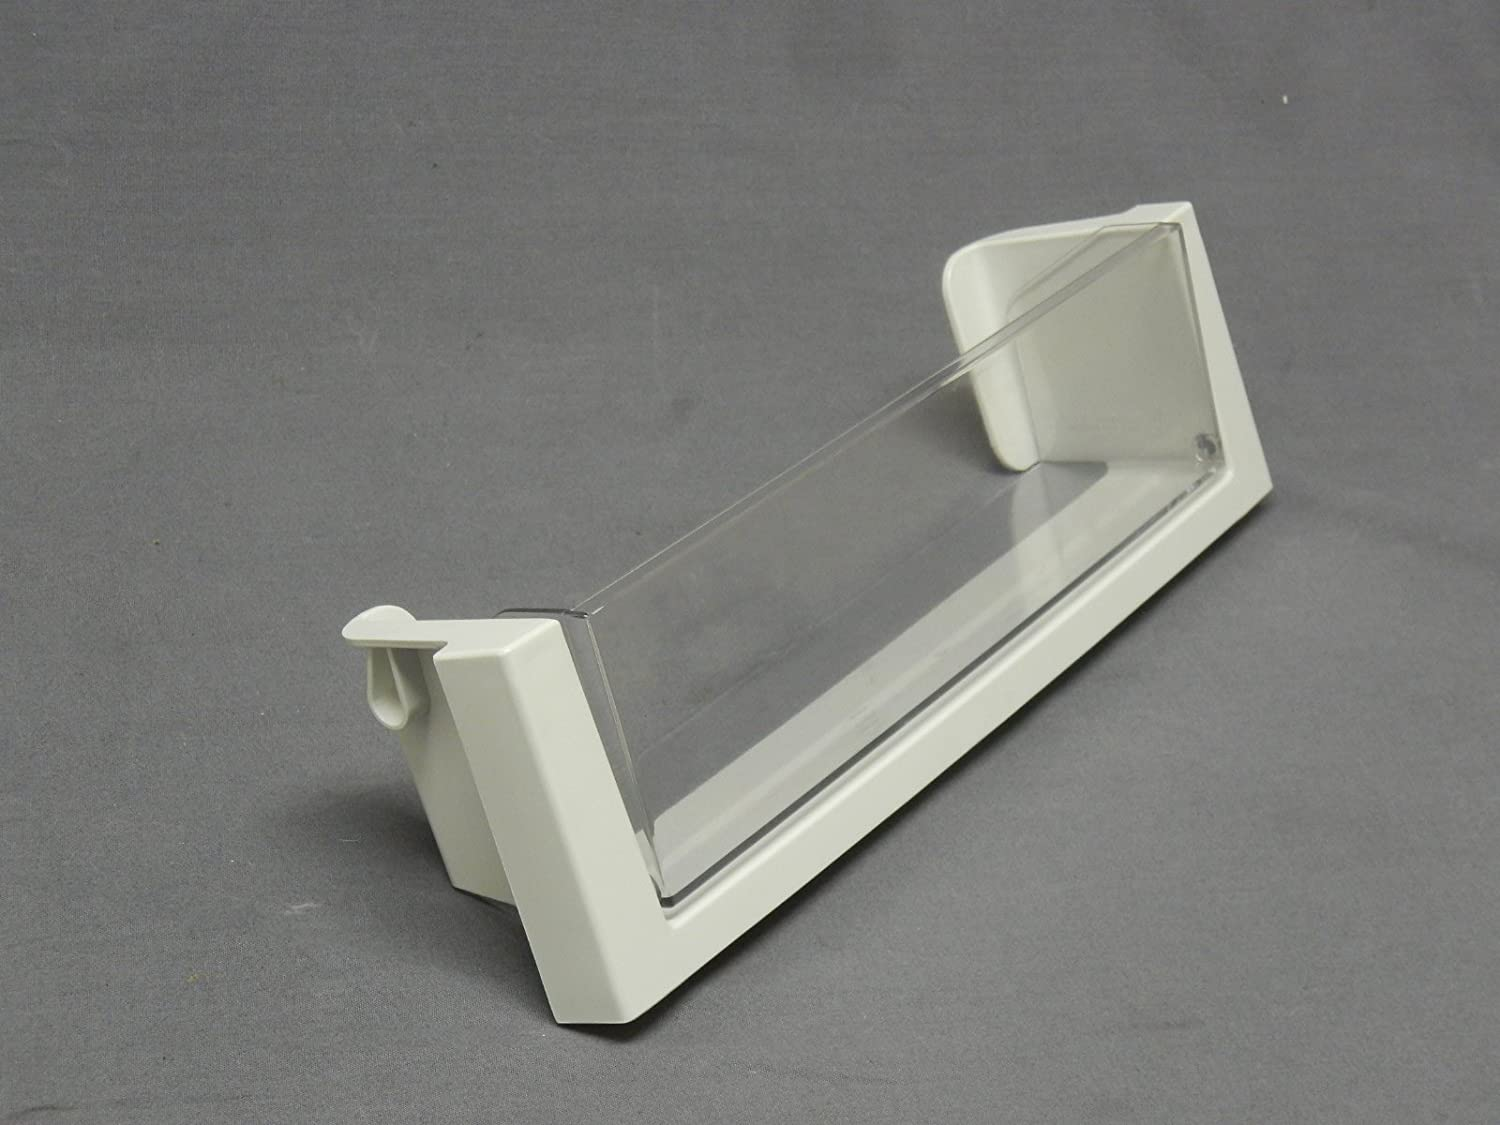 241804303 Refrigerator Door Shelf Rail Genuine Original Equipment Manufacturer (OEM) Part